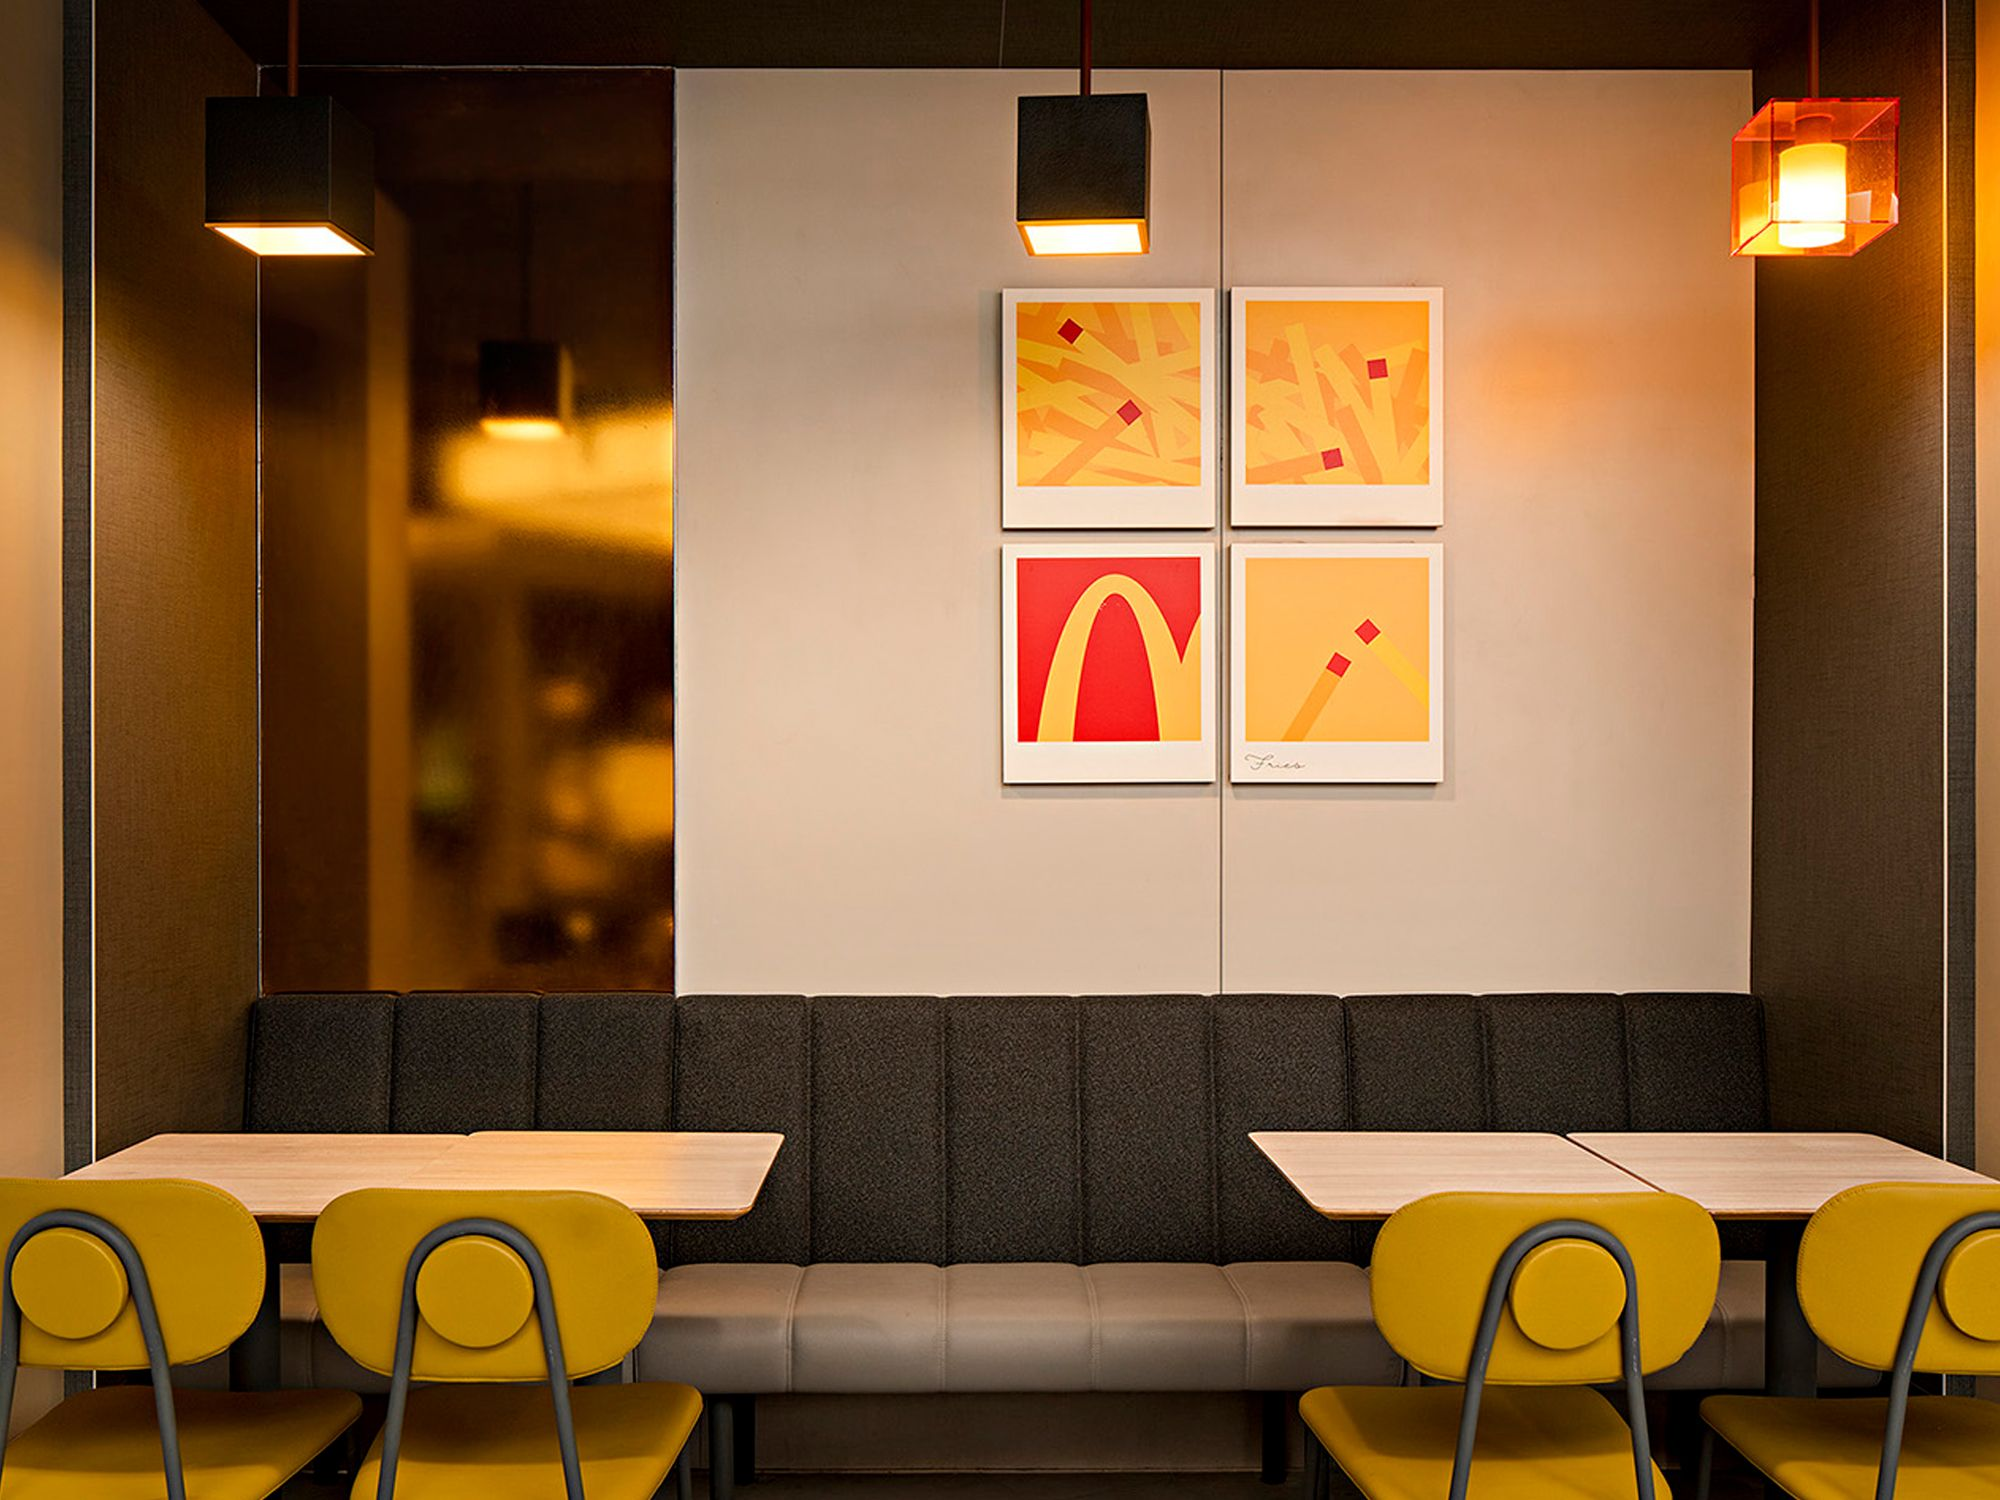 McDonald's Cube: Steve Leung Designs the Fast Food Chain's New Restaurant Concept